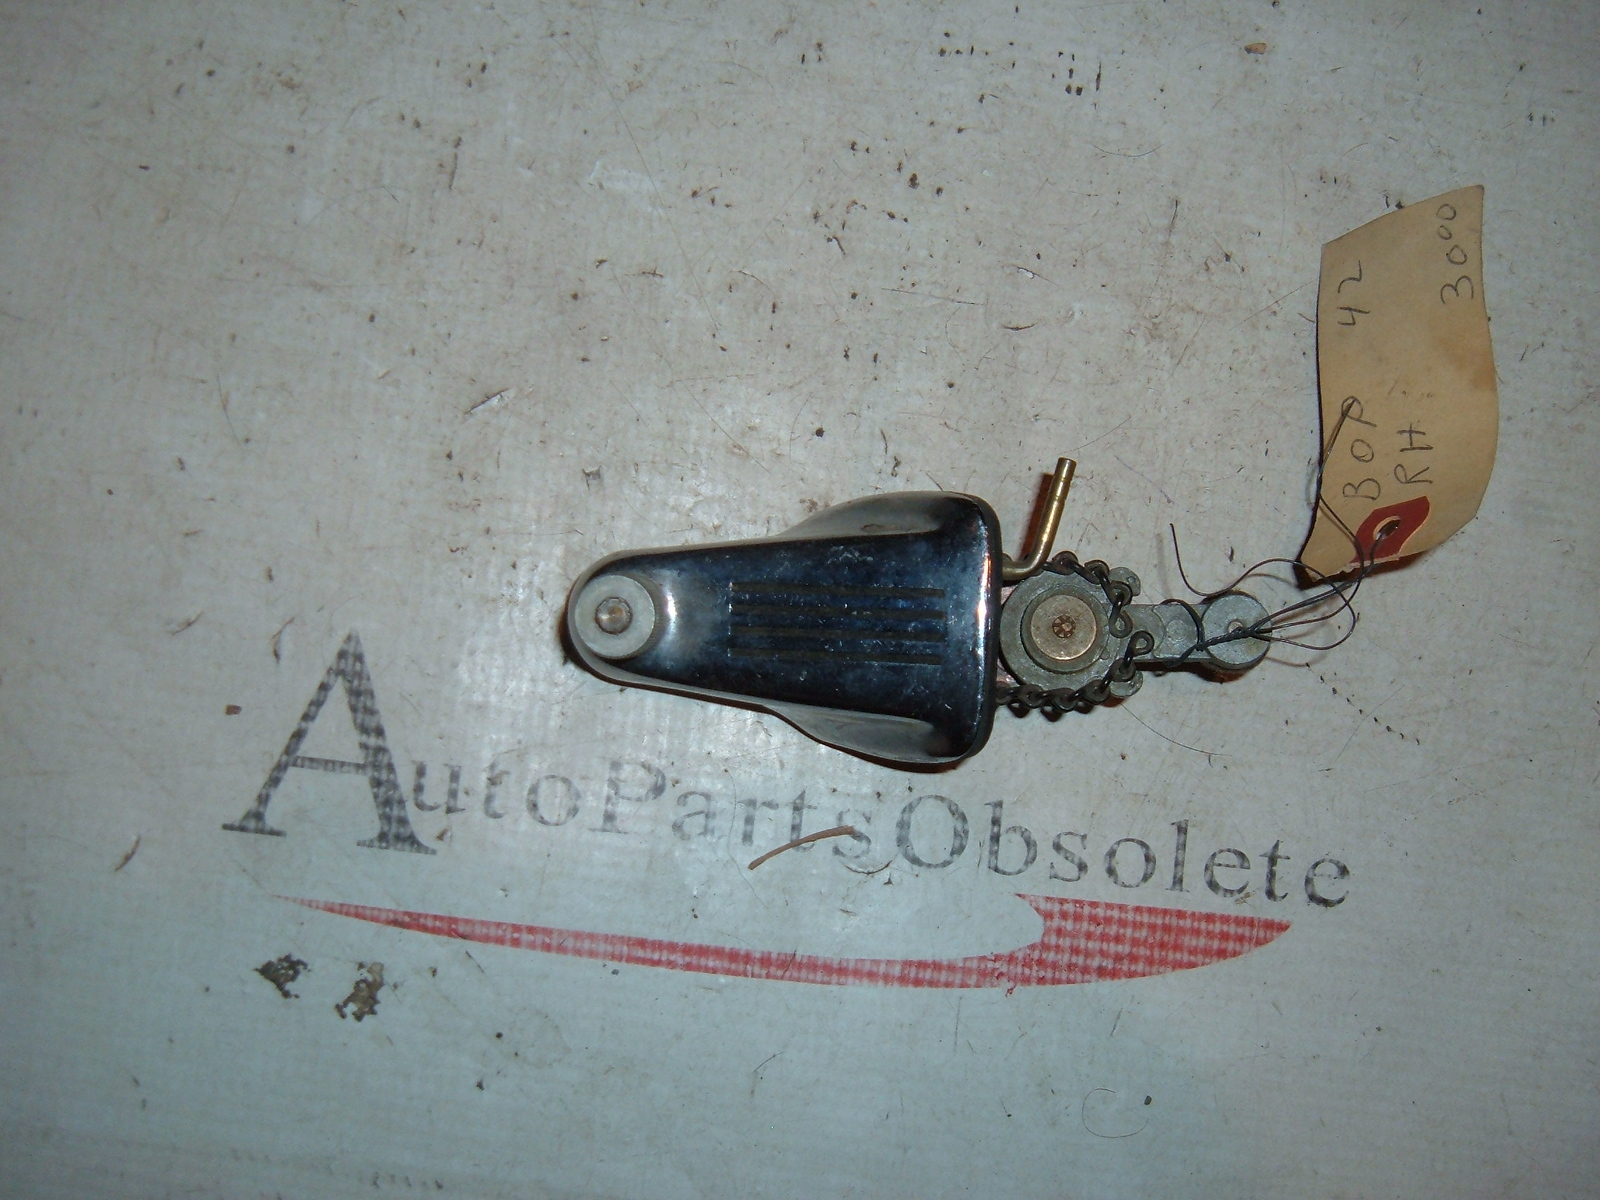 1942 oldsmobile buick pontiac windshield wiper transmission assy nos (z 42wipertrans)